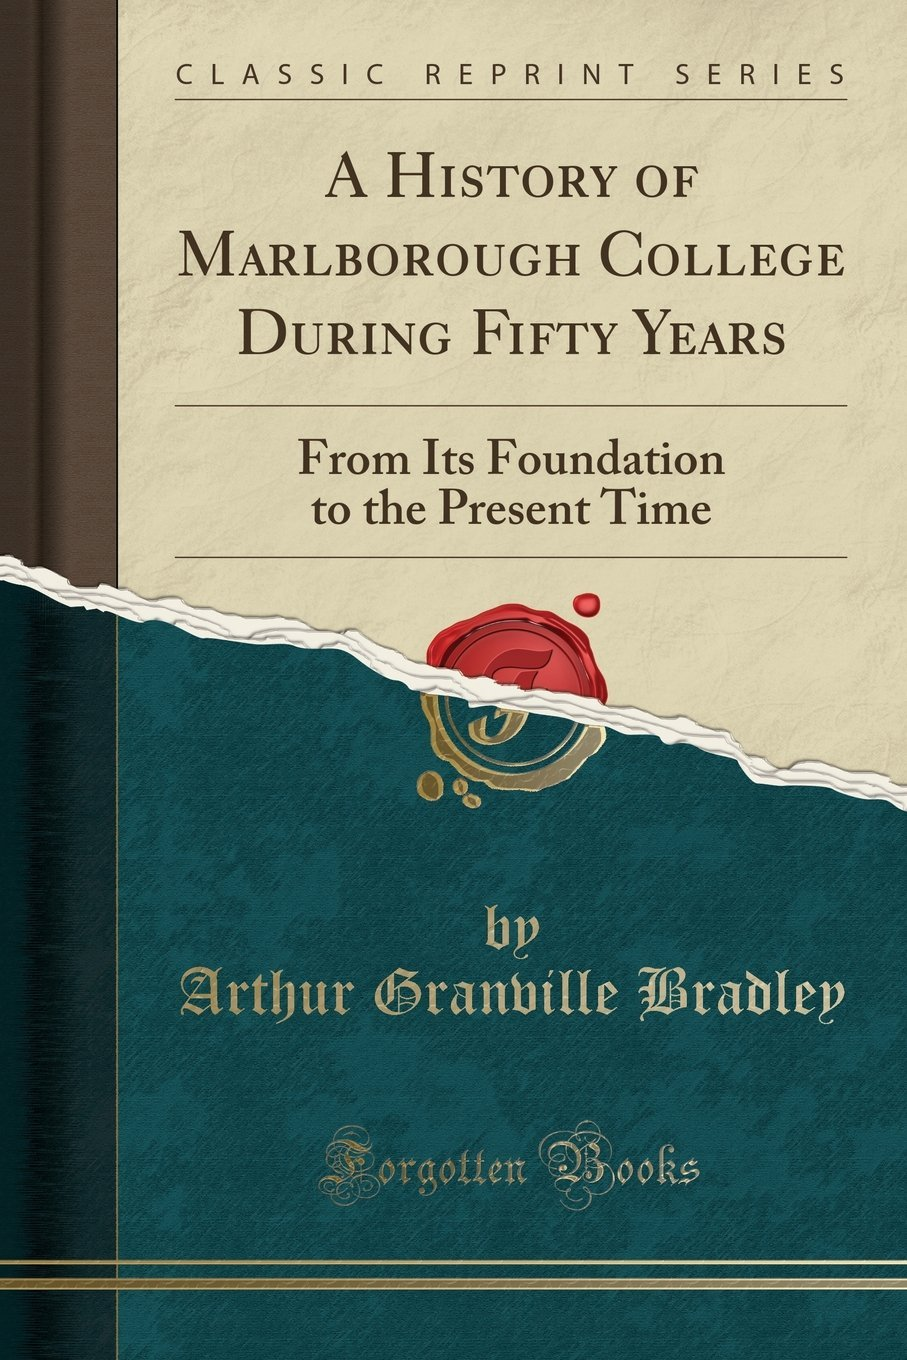 Download A History of Marlborough College During Fifty Years: From Its Foundation to the Present Time (Classic Reprint) PDF